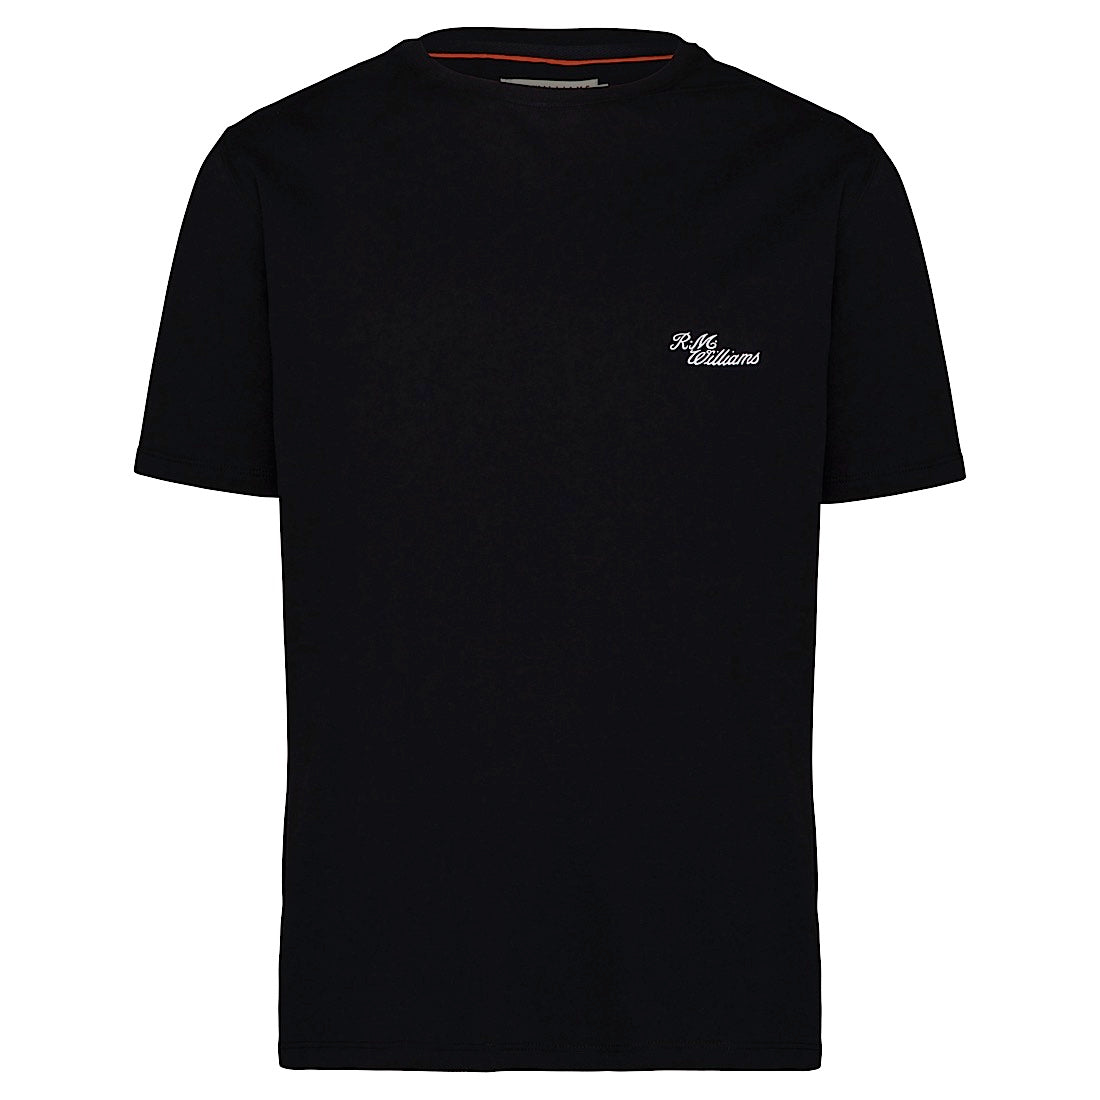 R.M.Williams Byron T - Shirt Black